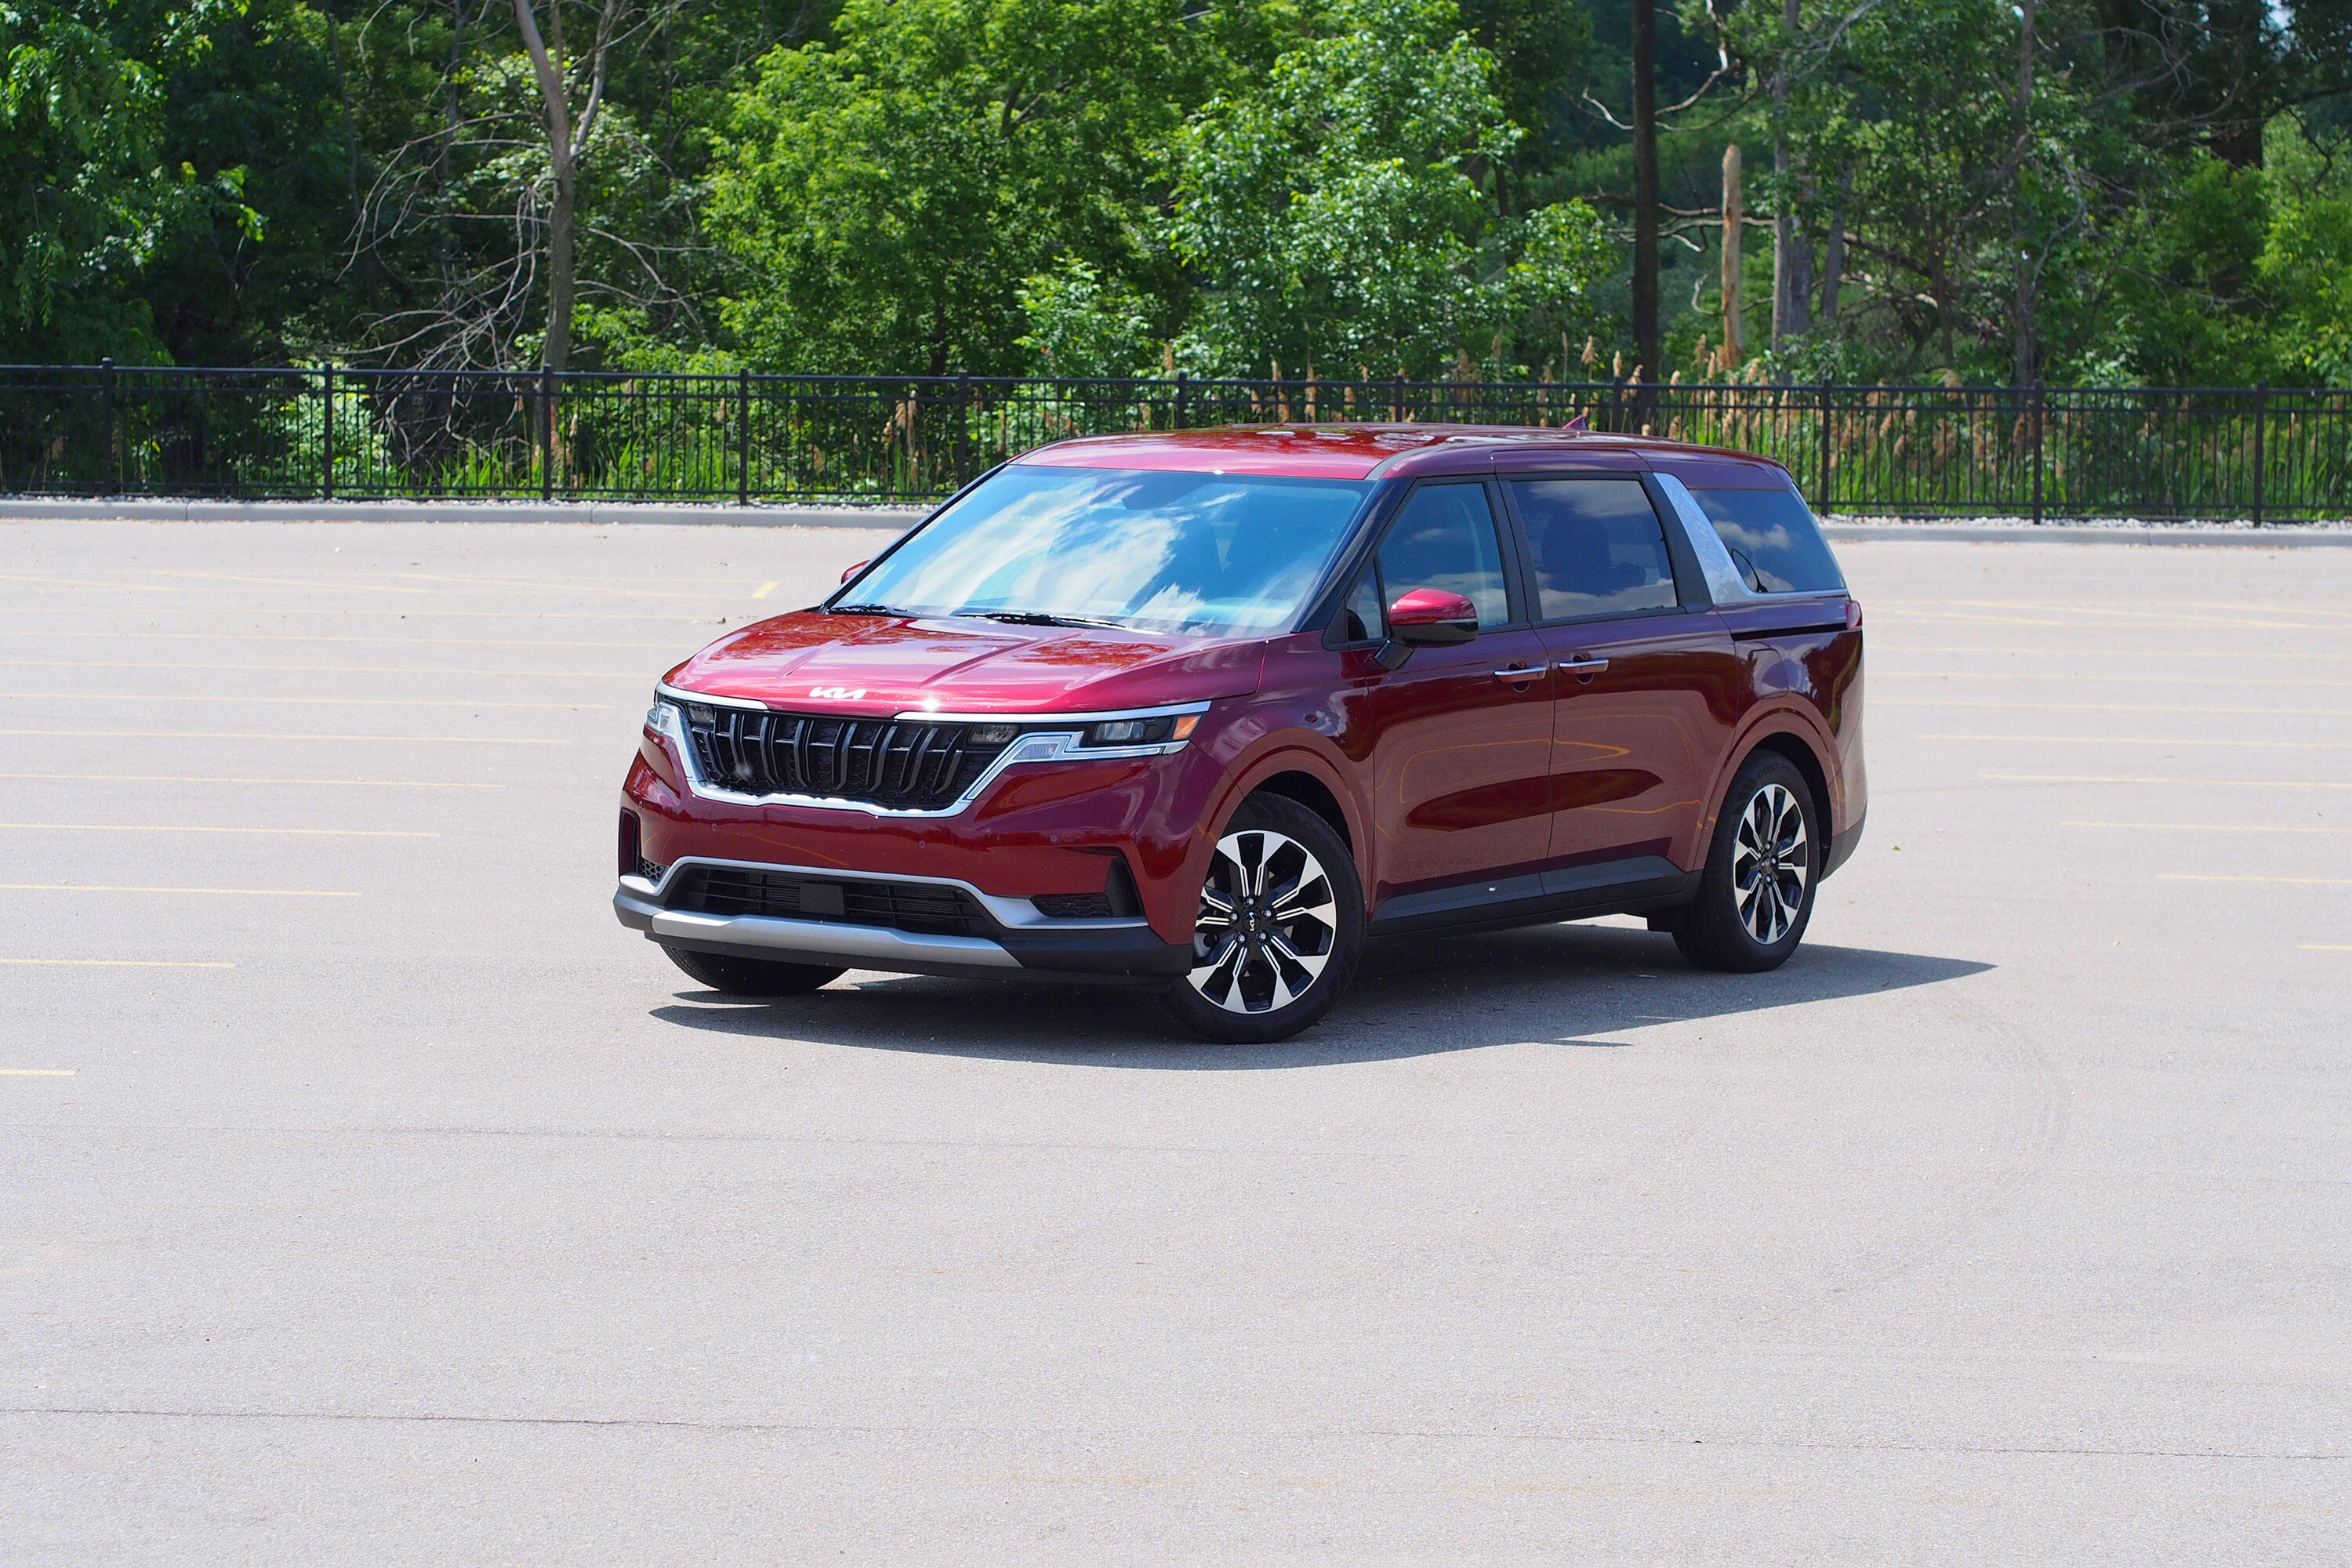 2022 Kia Carnival review: A party on wheels     - Roadshow